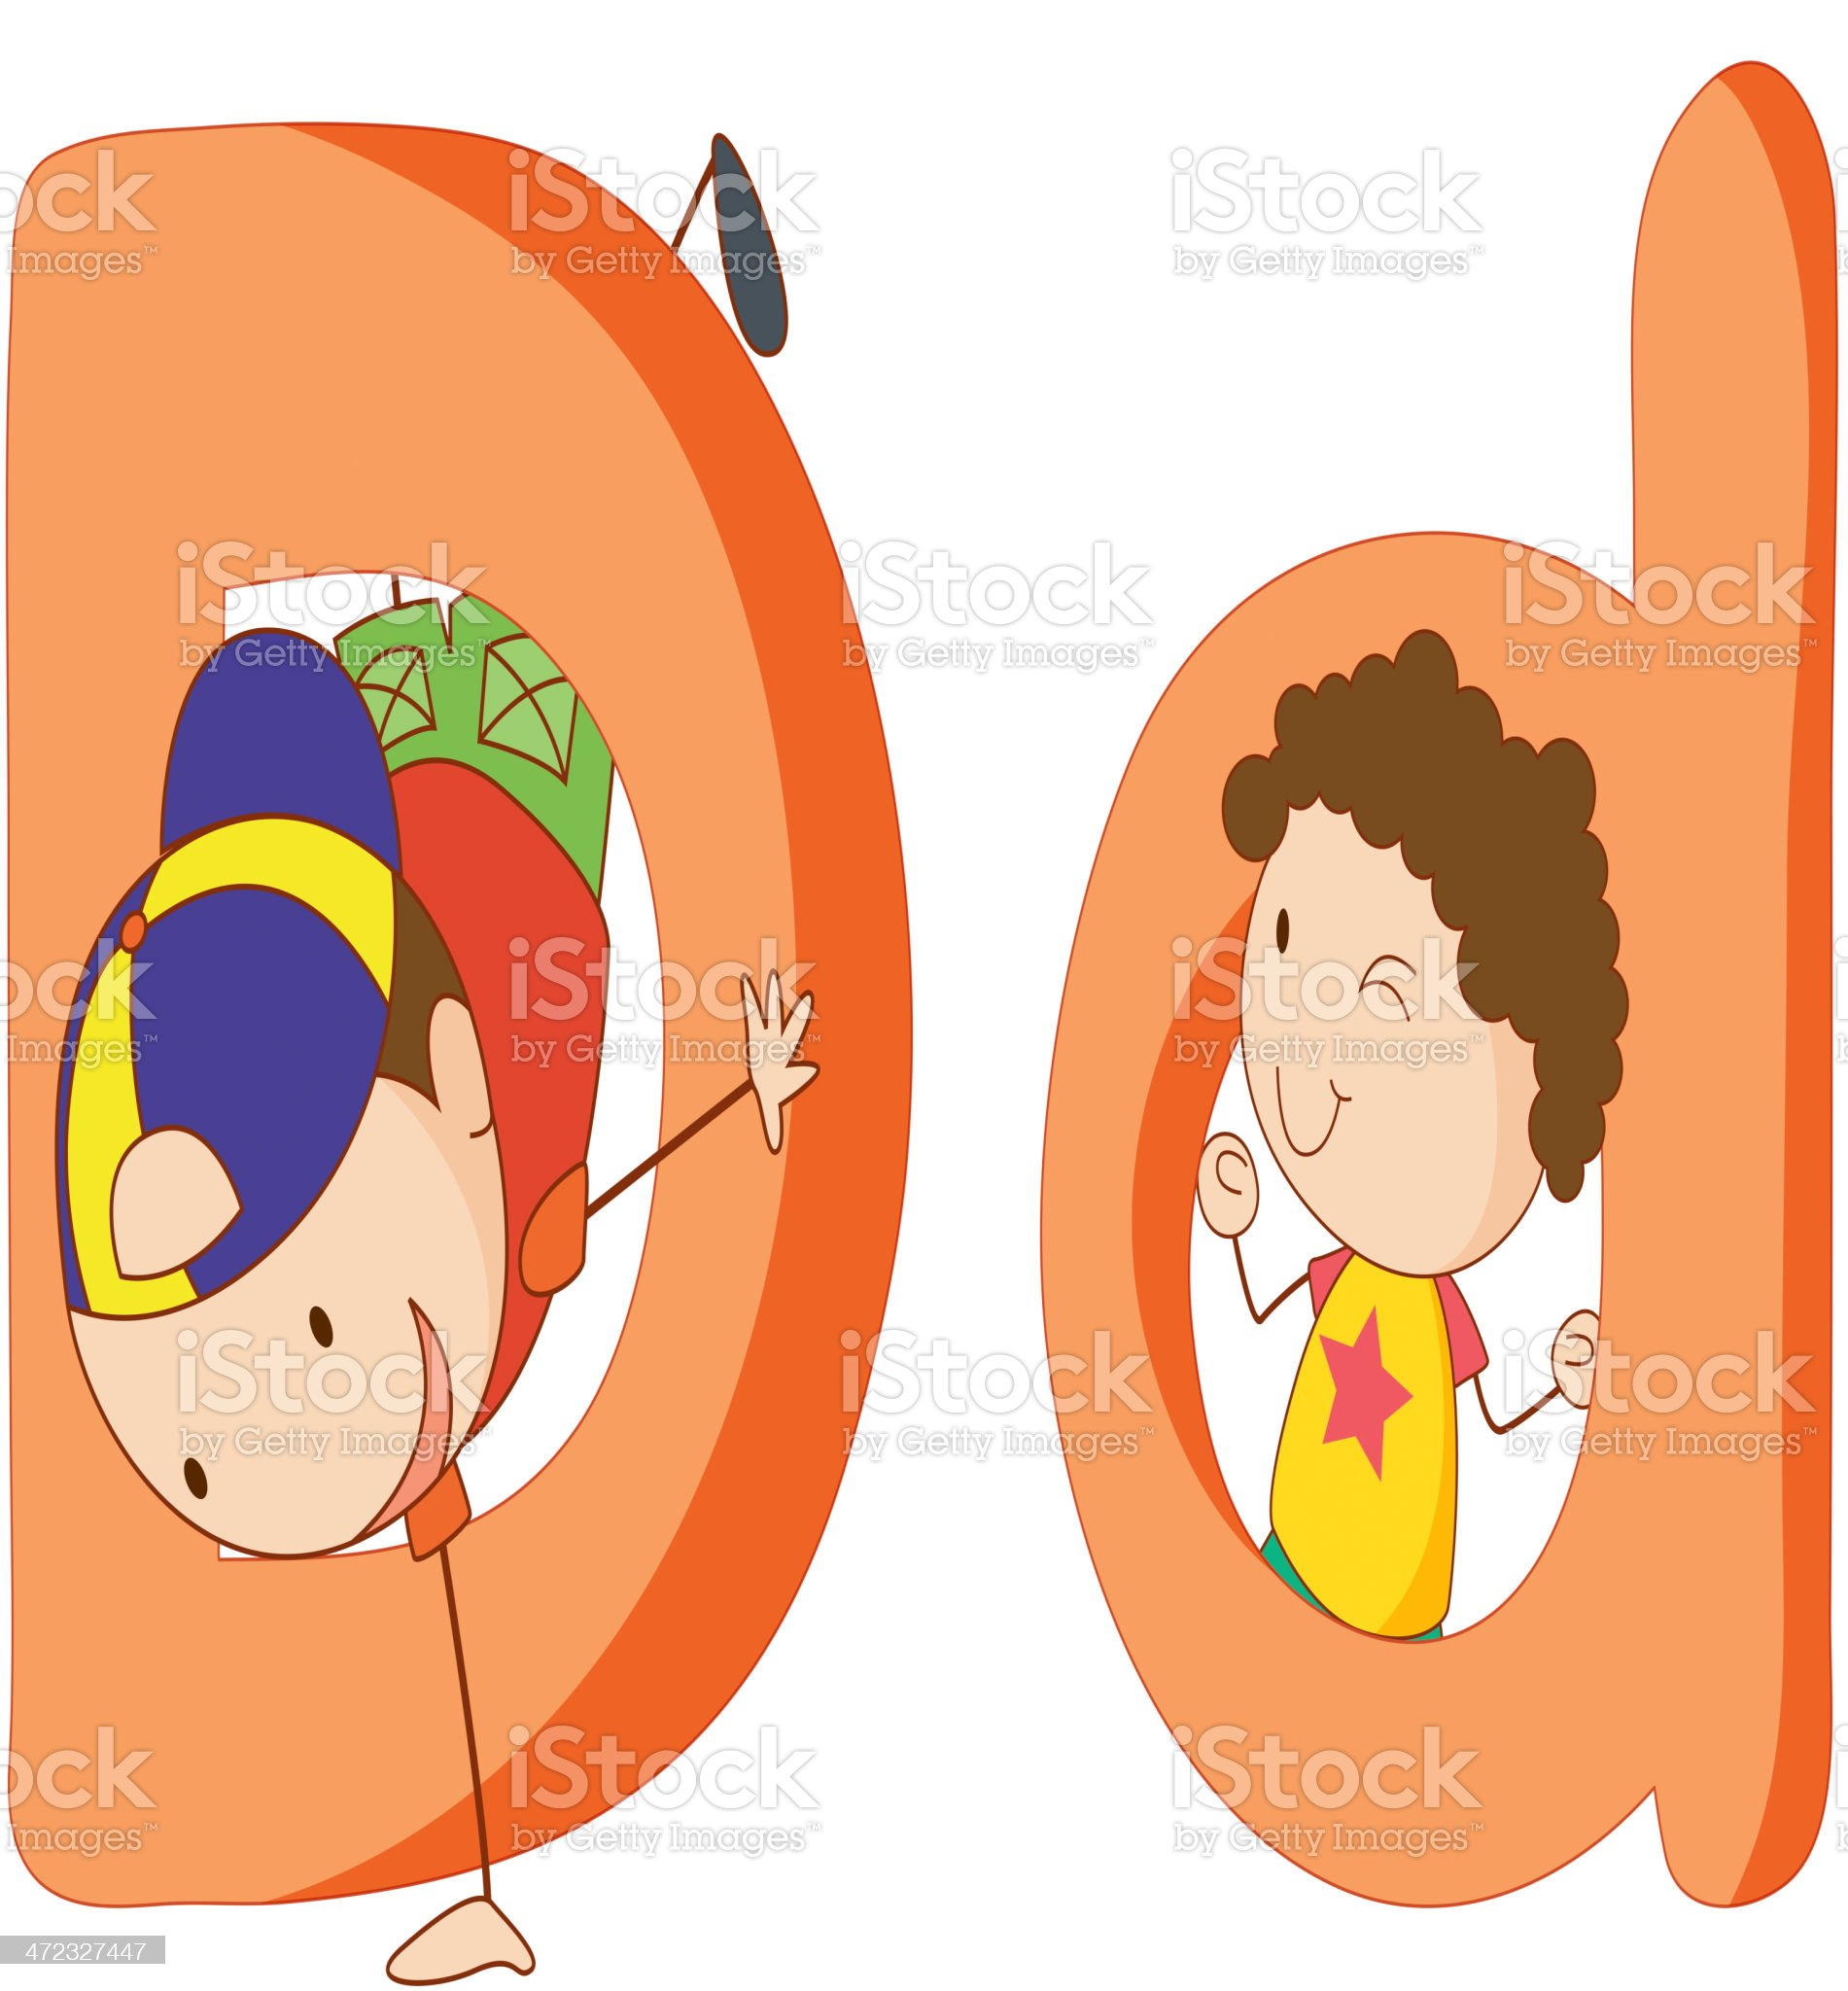 Kids in the letters series royalty-free stock vector art